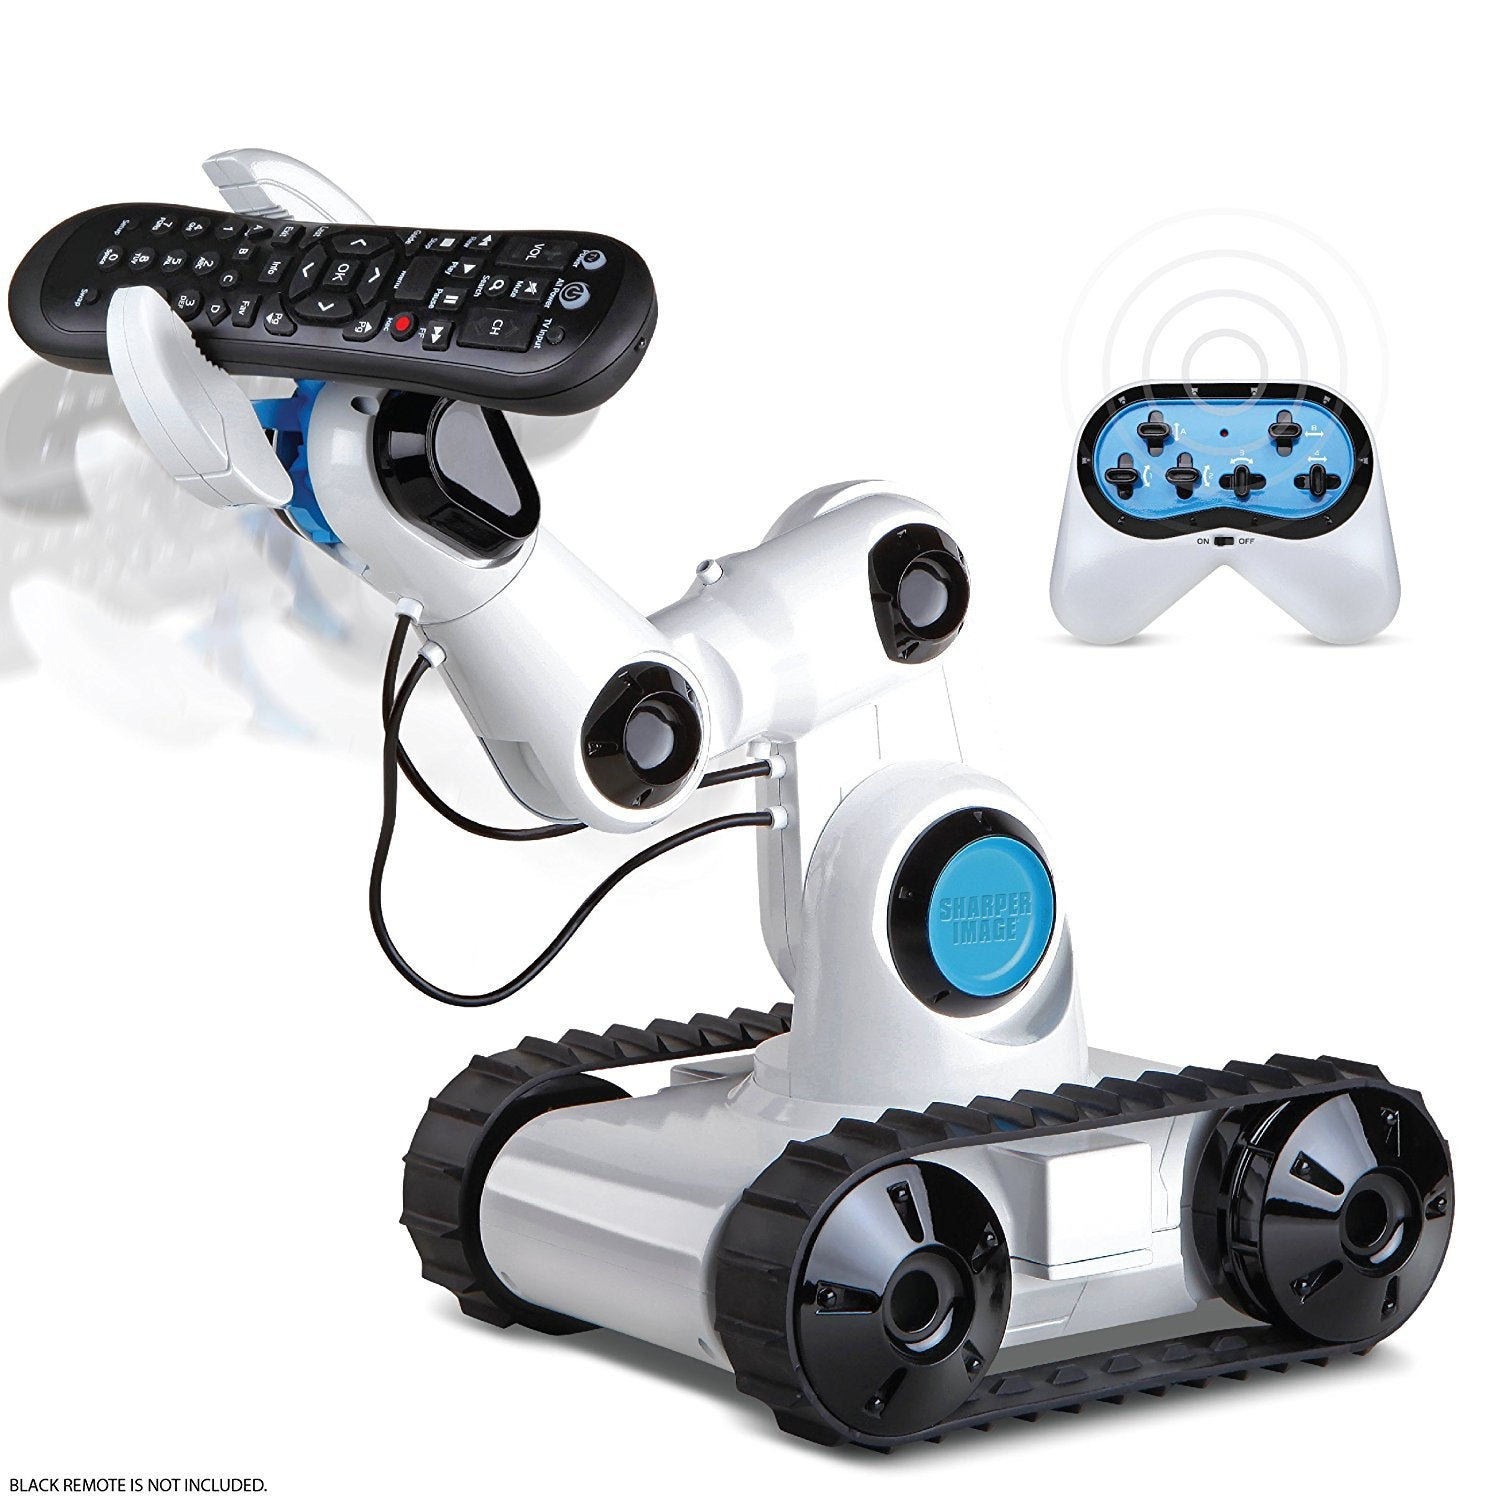 SHARPER IMAGE Full Function Wireless Control Robotic Arm Toy with Spotlight, Jumbo Claw Grip & Tank Tread Wheels, 2.4GHz - wiihuu